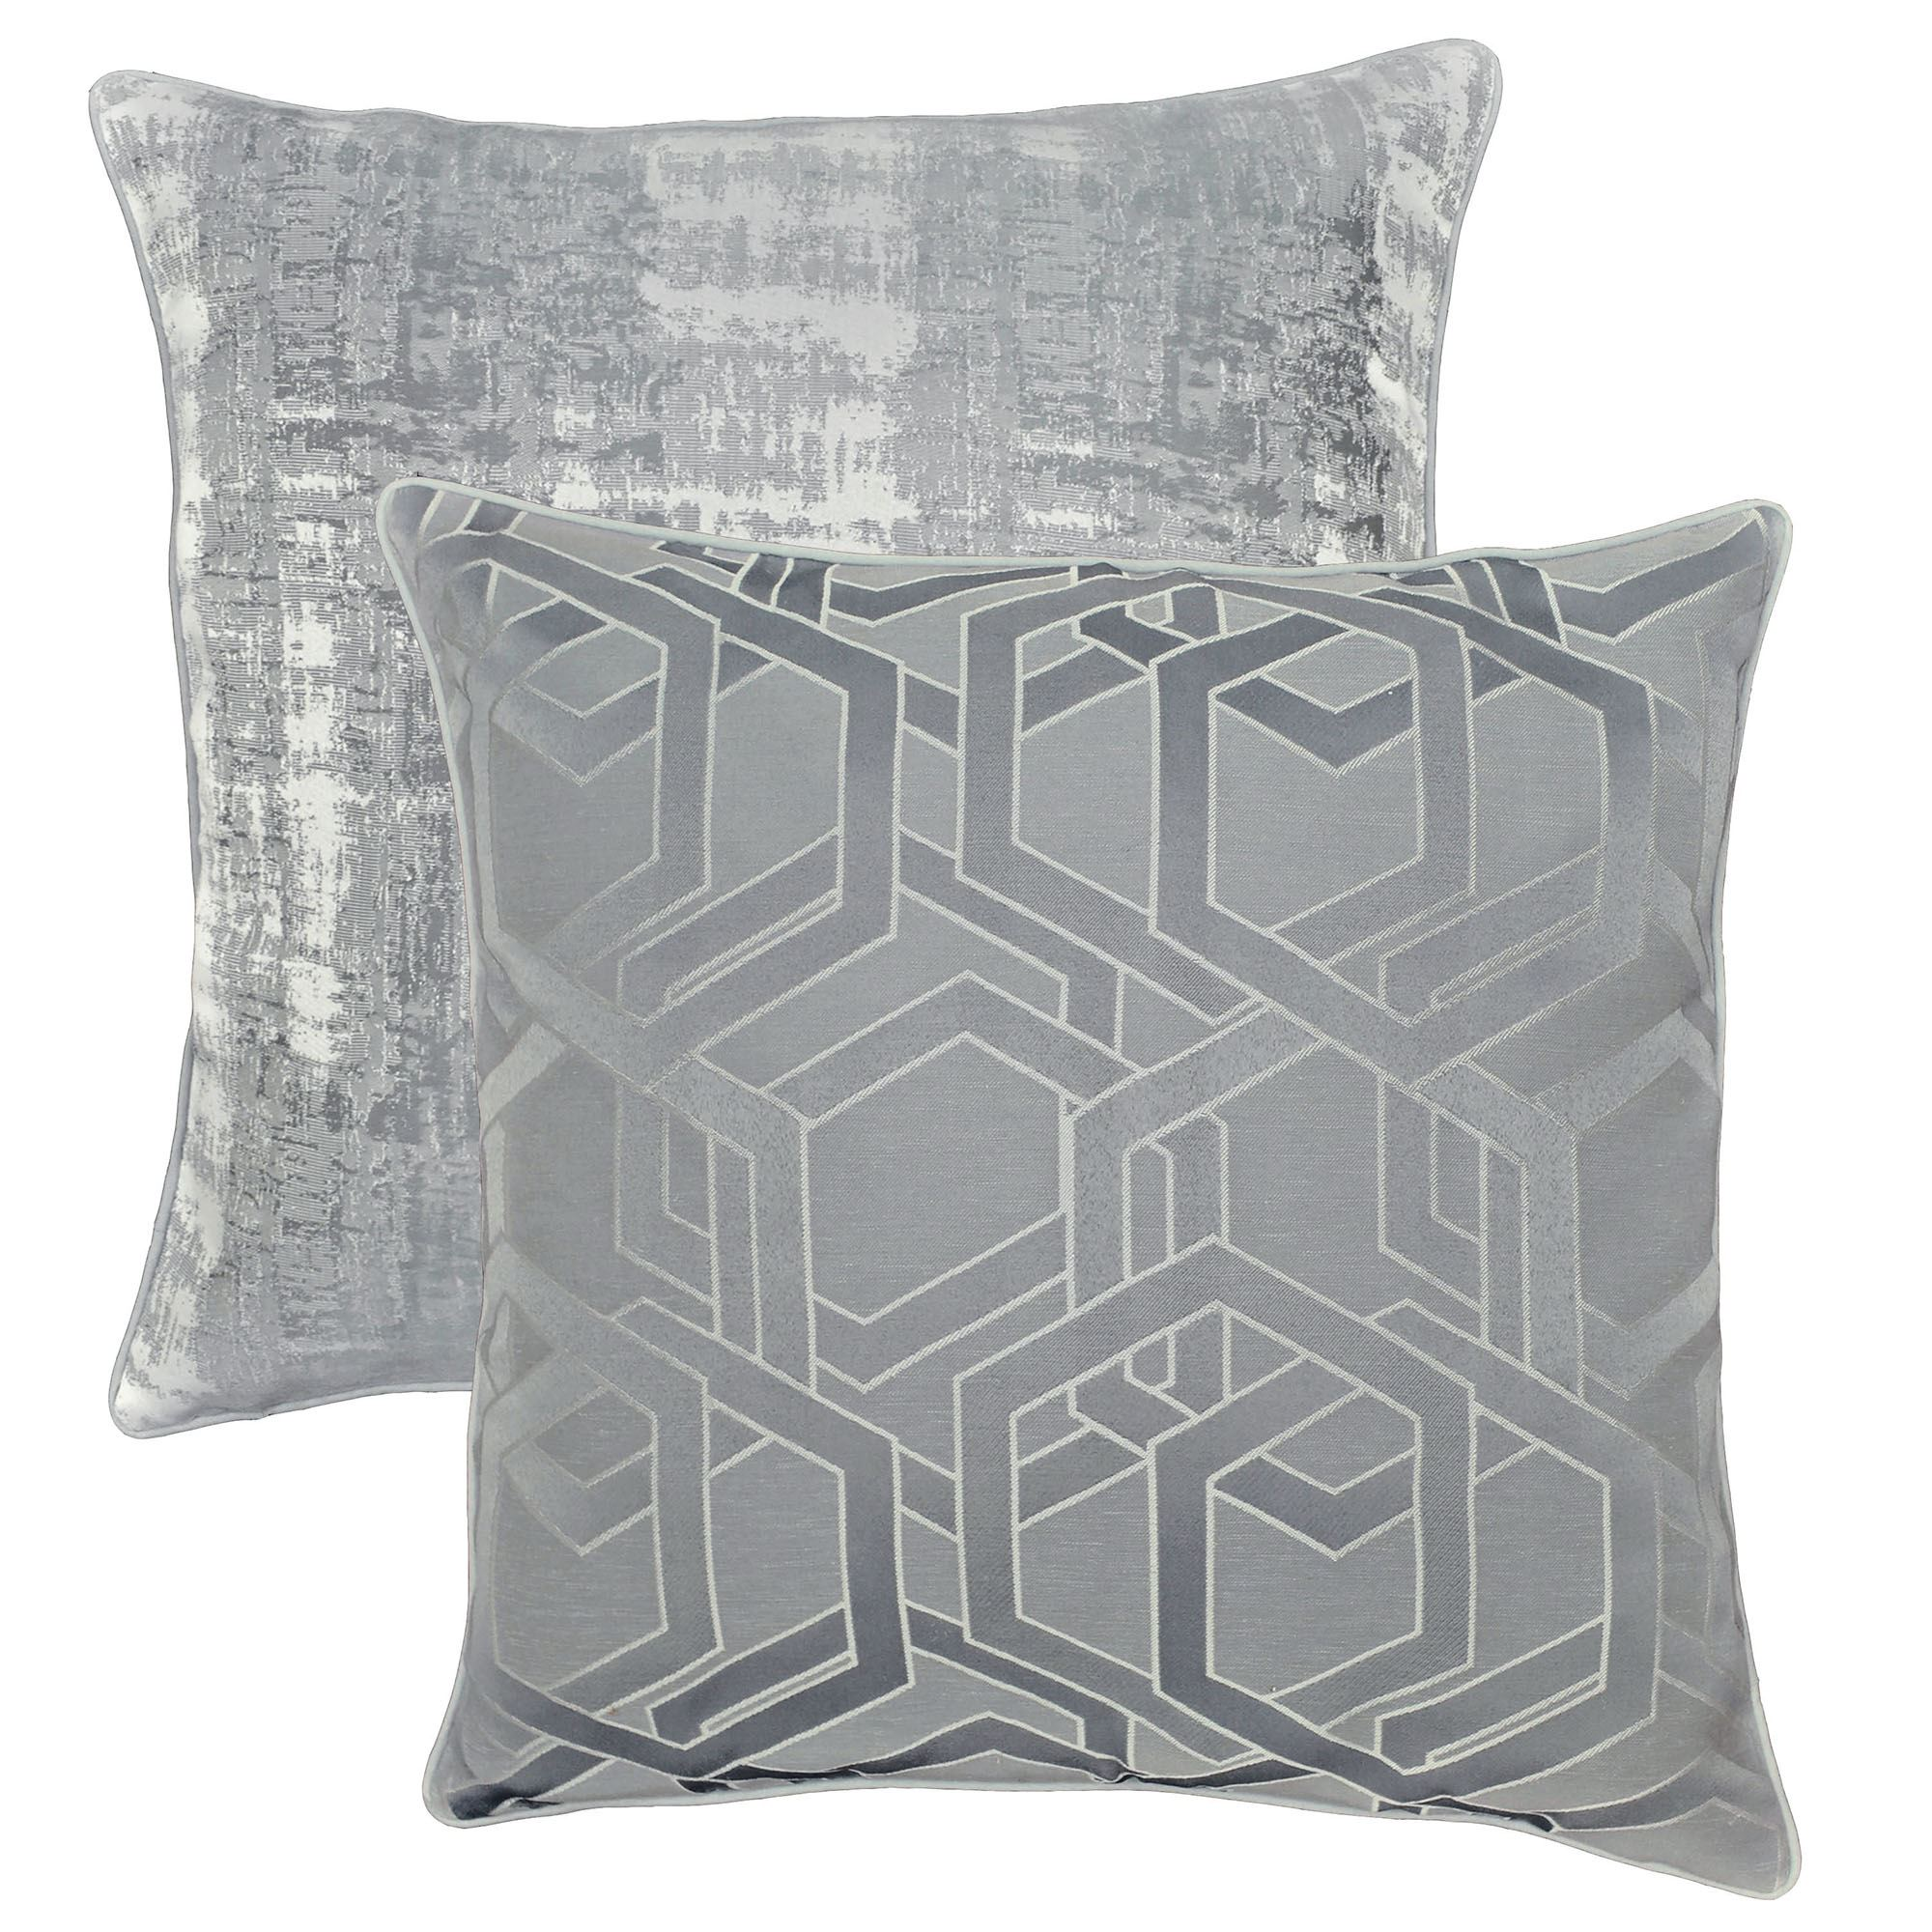 garden on pillows orders inch over pk pliiows coral x shipping pack product laundry free french accent home pillow